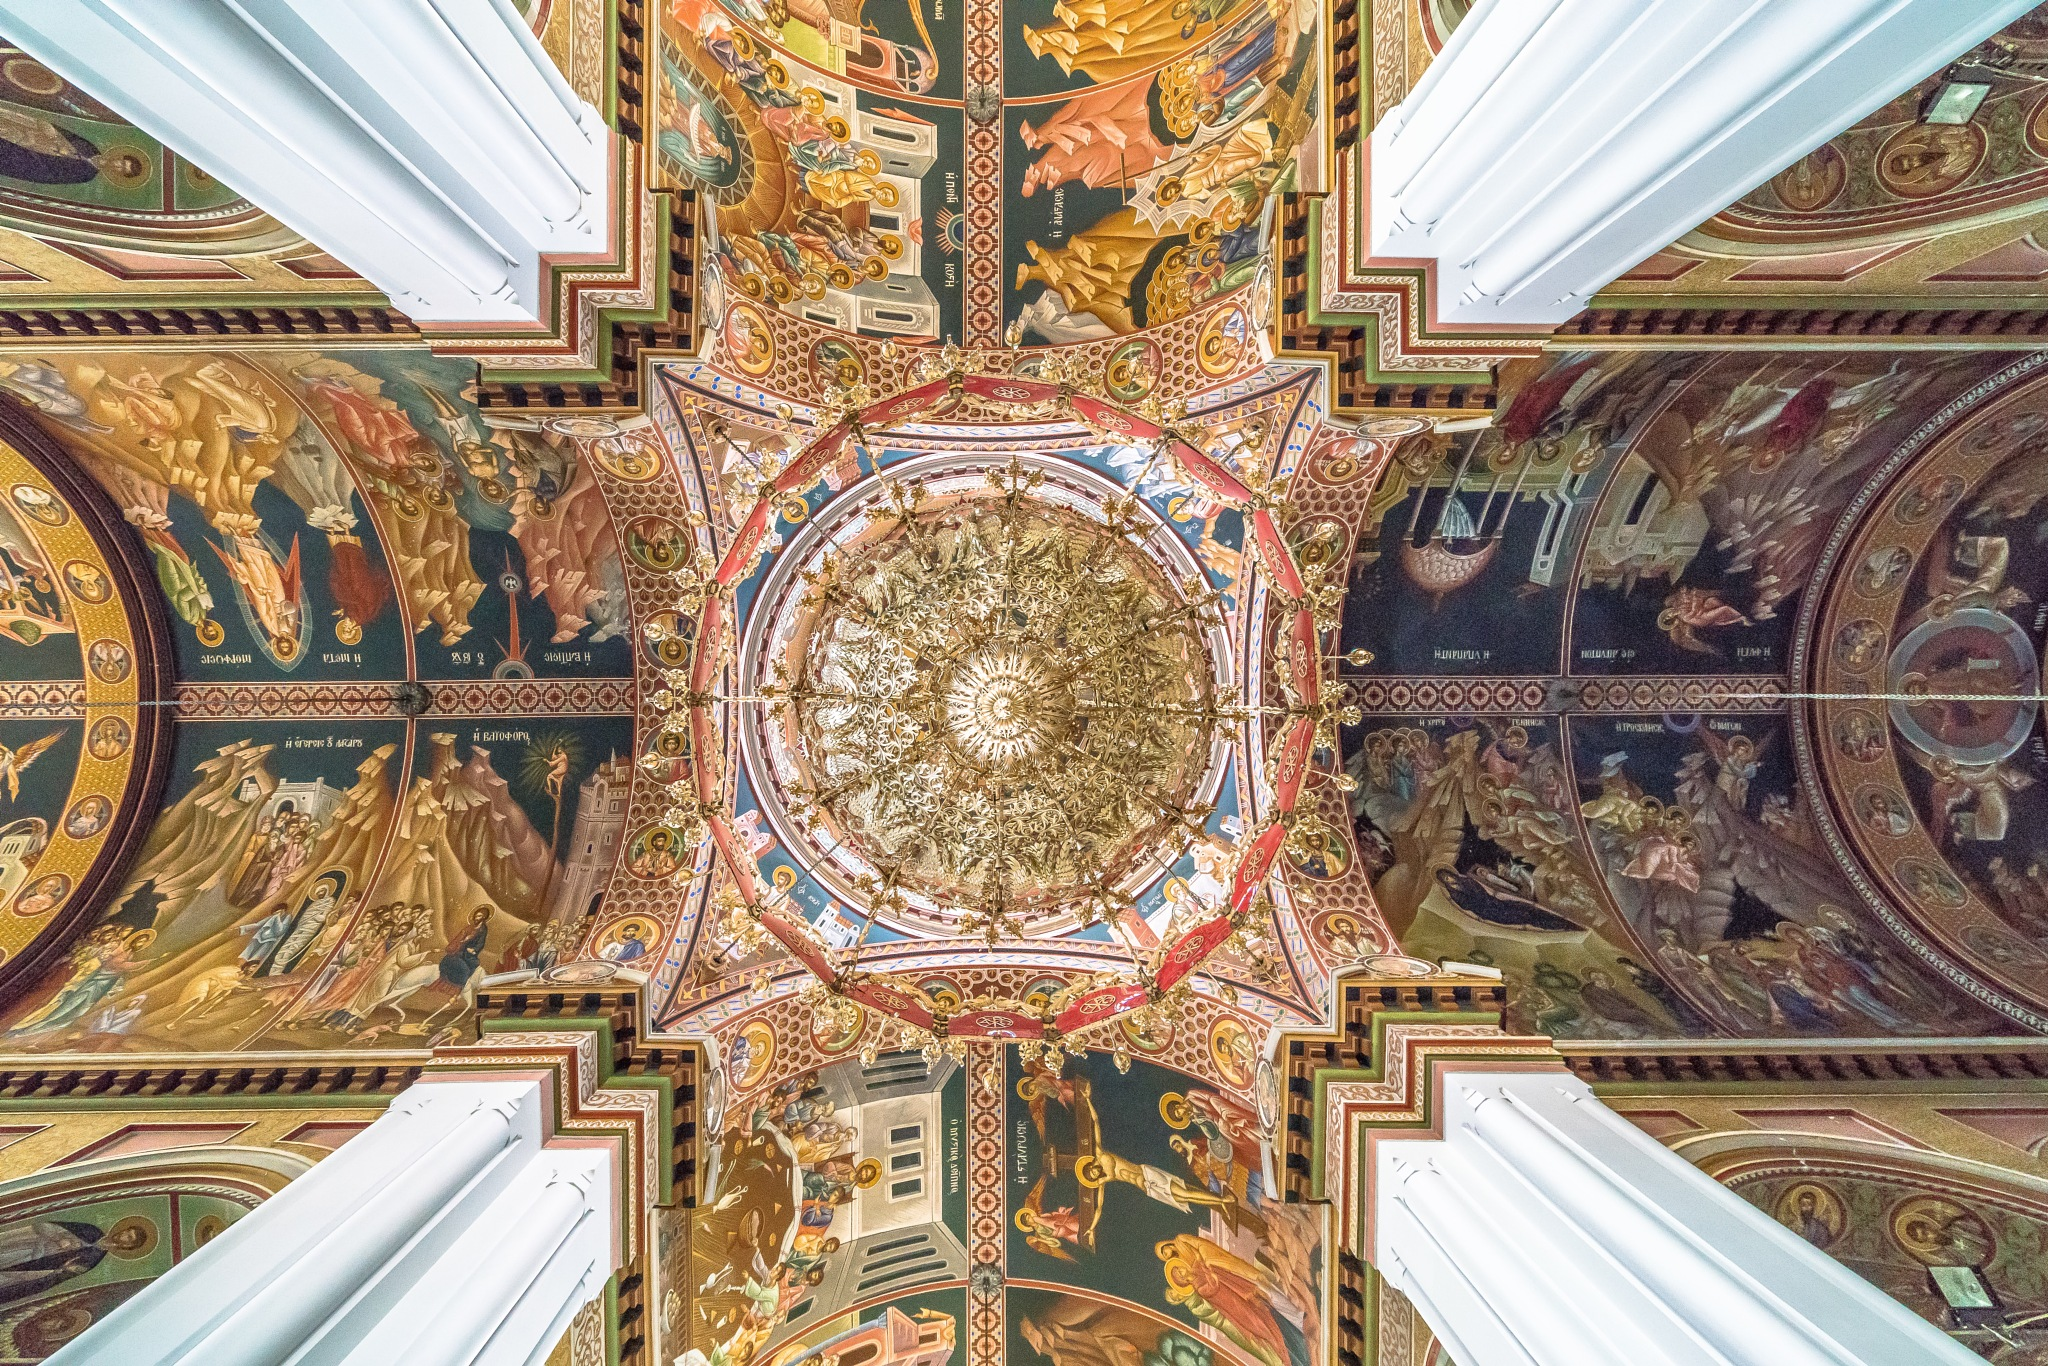 Ceiling by BernArt Photography